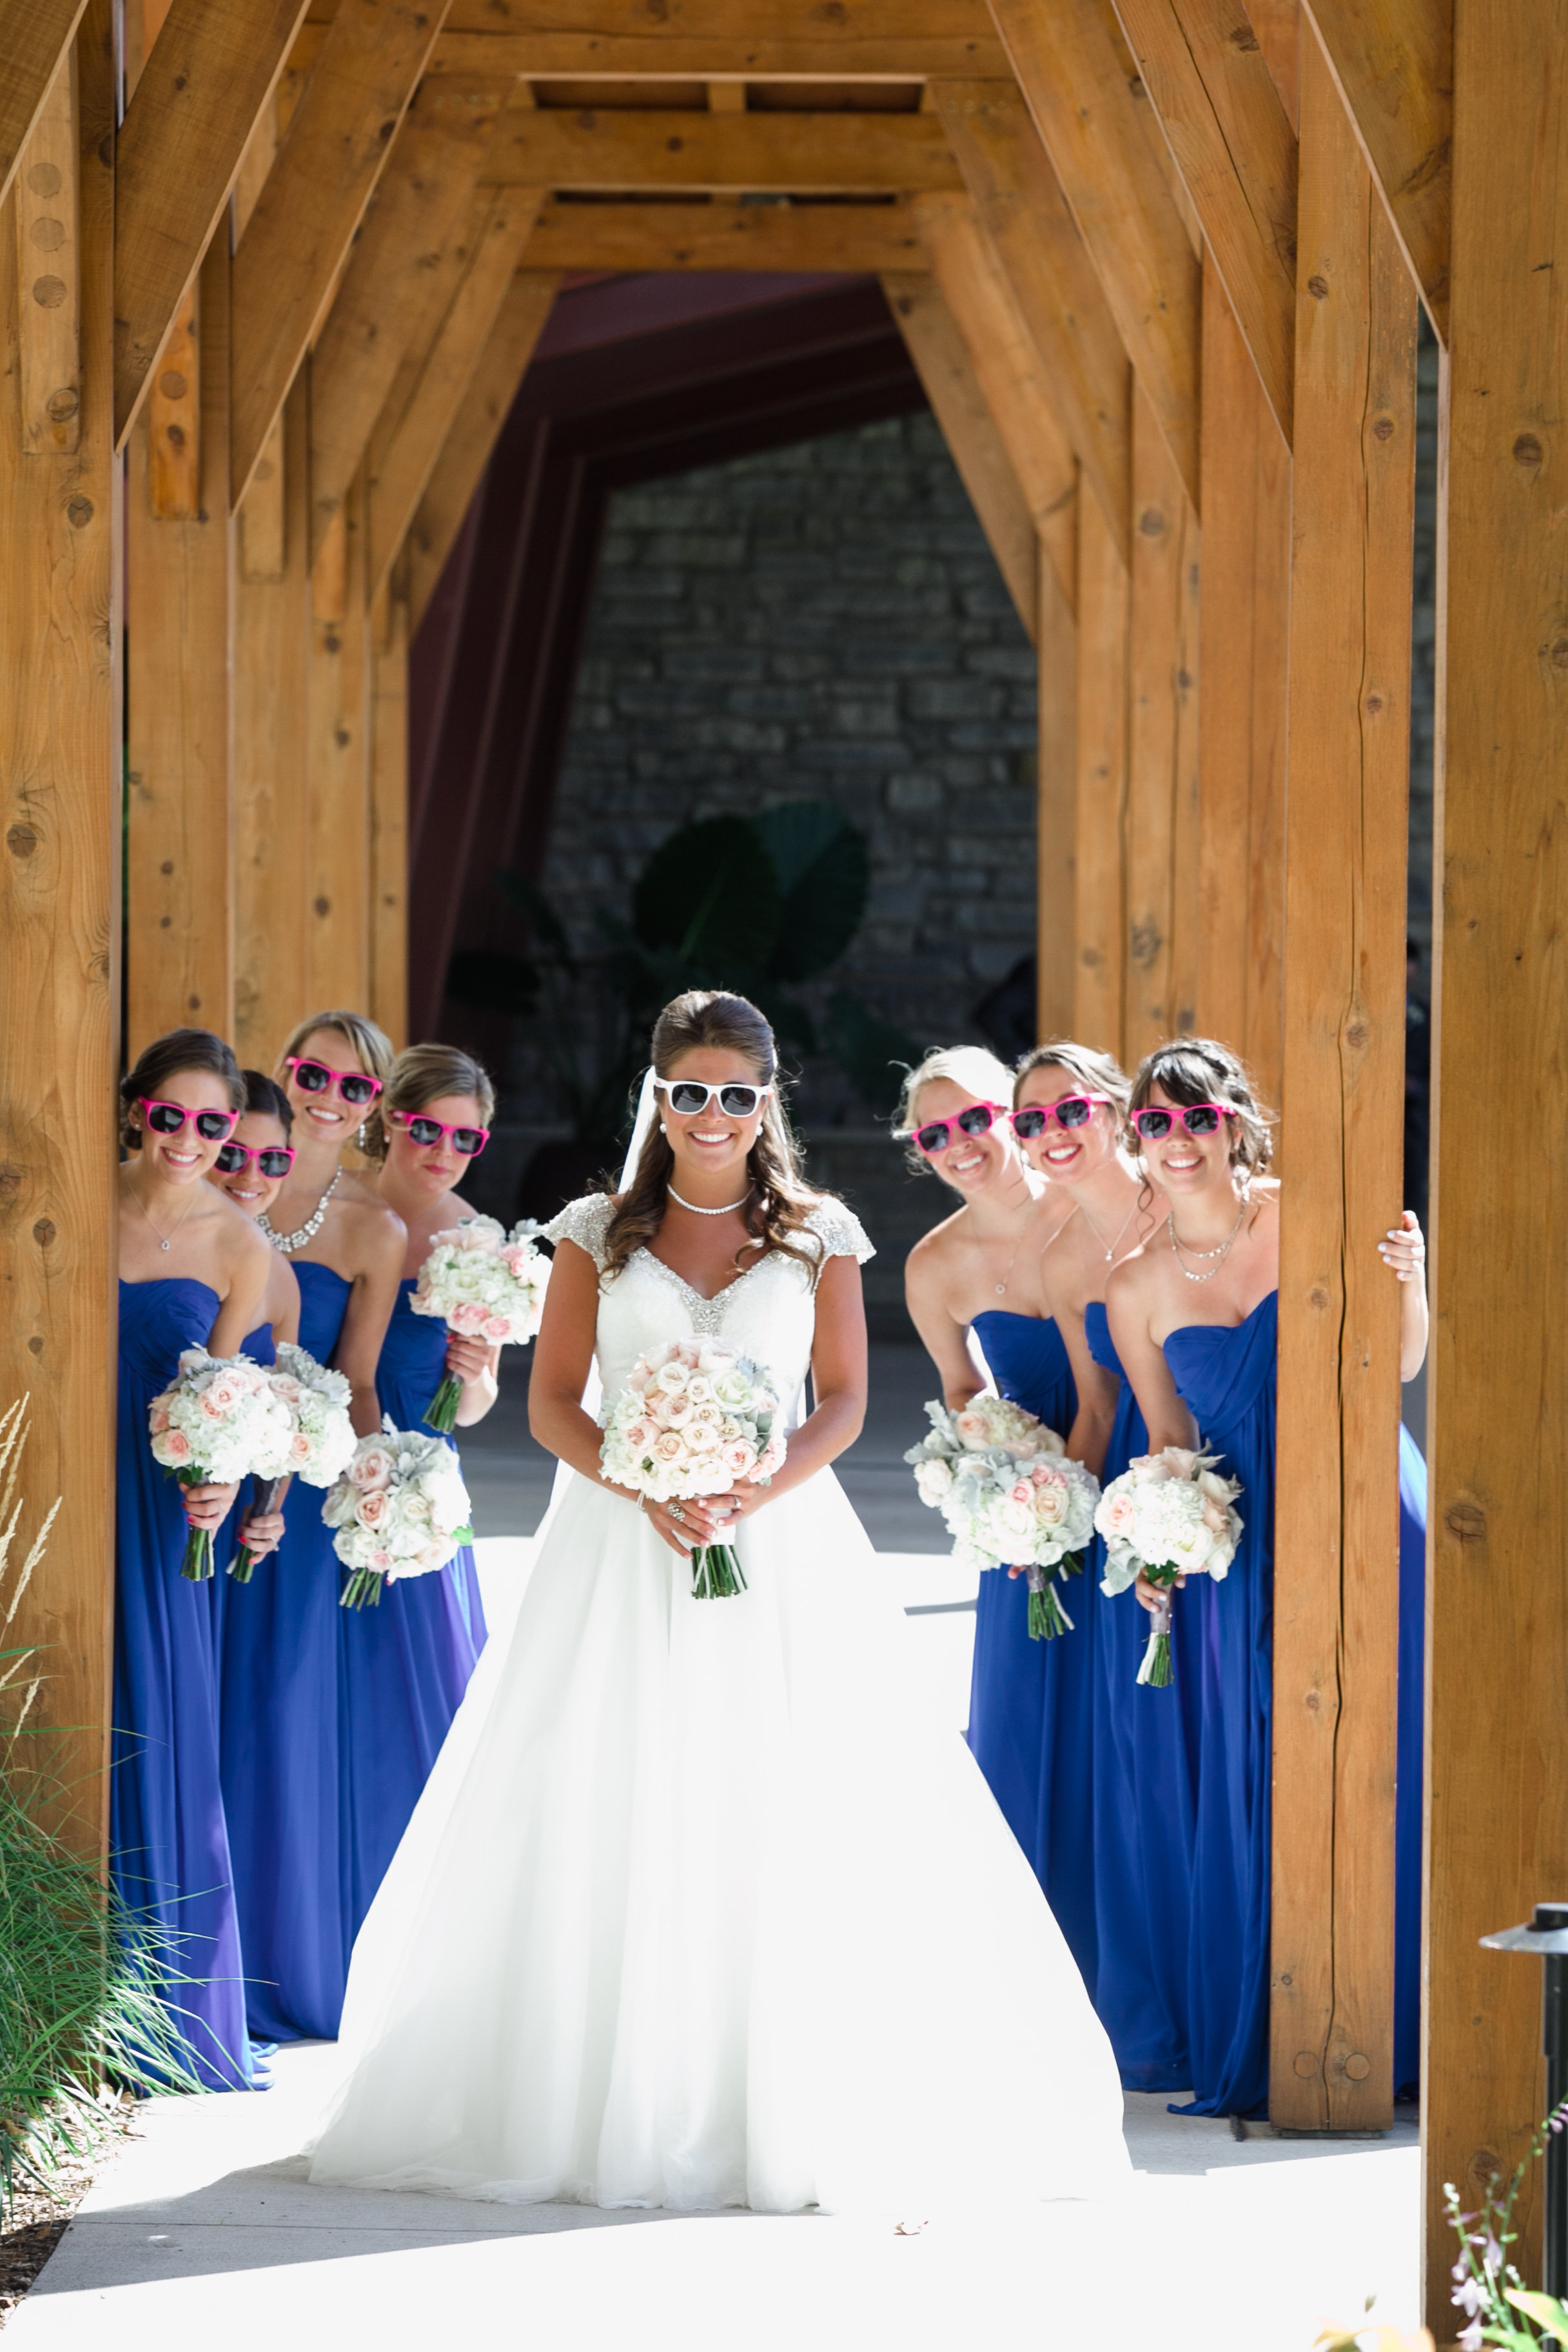 Bridal Party Outside Arch Silly - 7.jpg